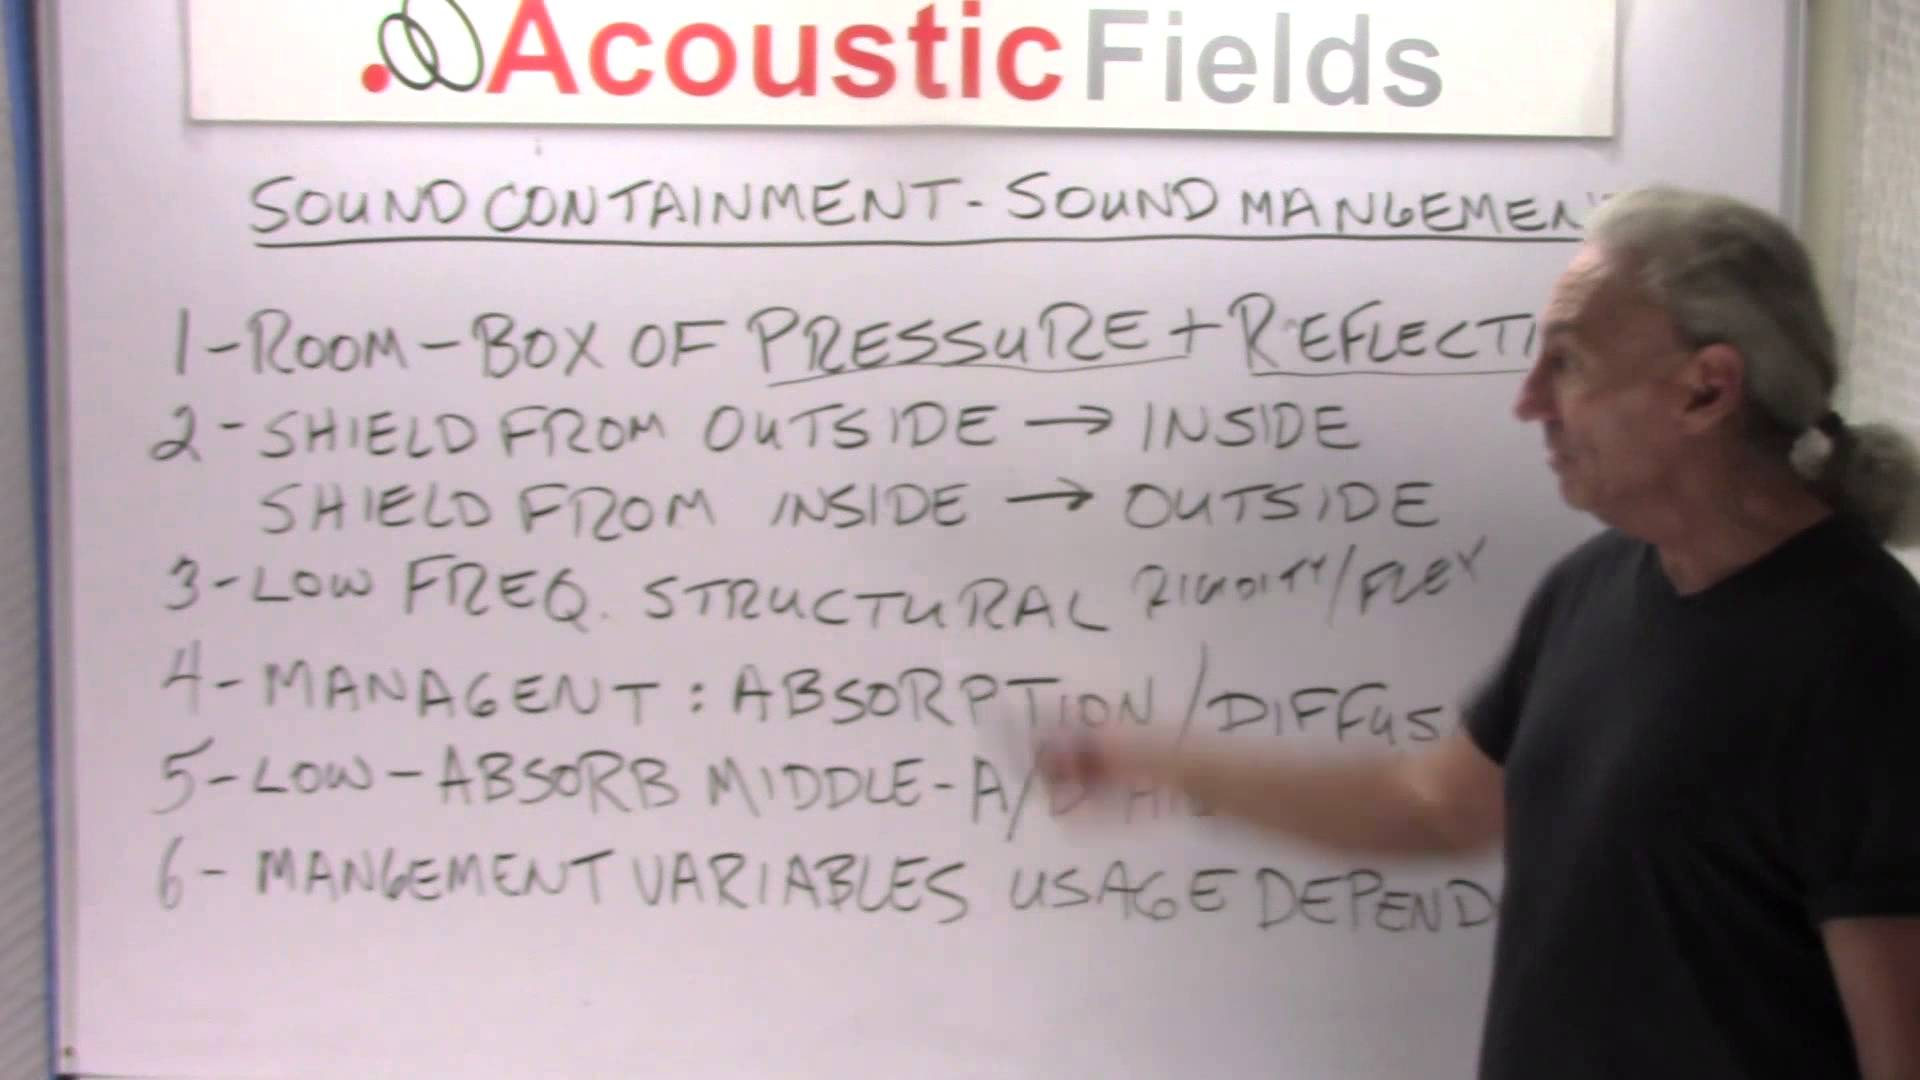 Sound Containment / Sound Management